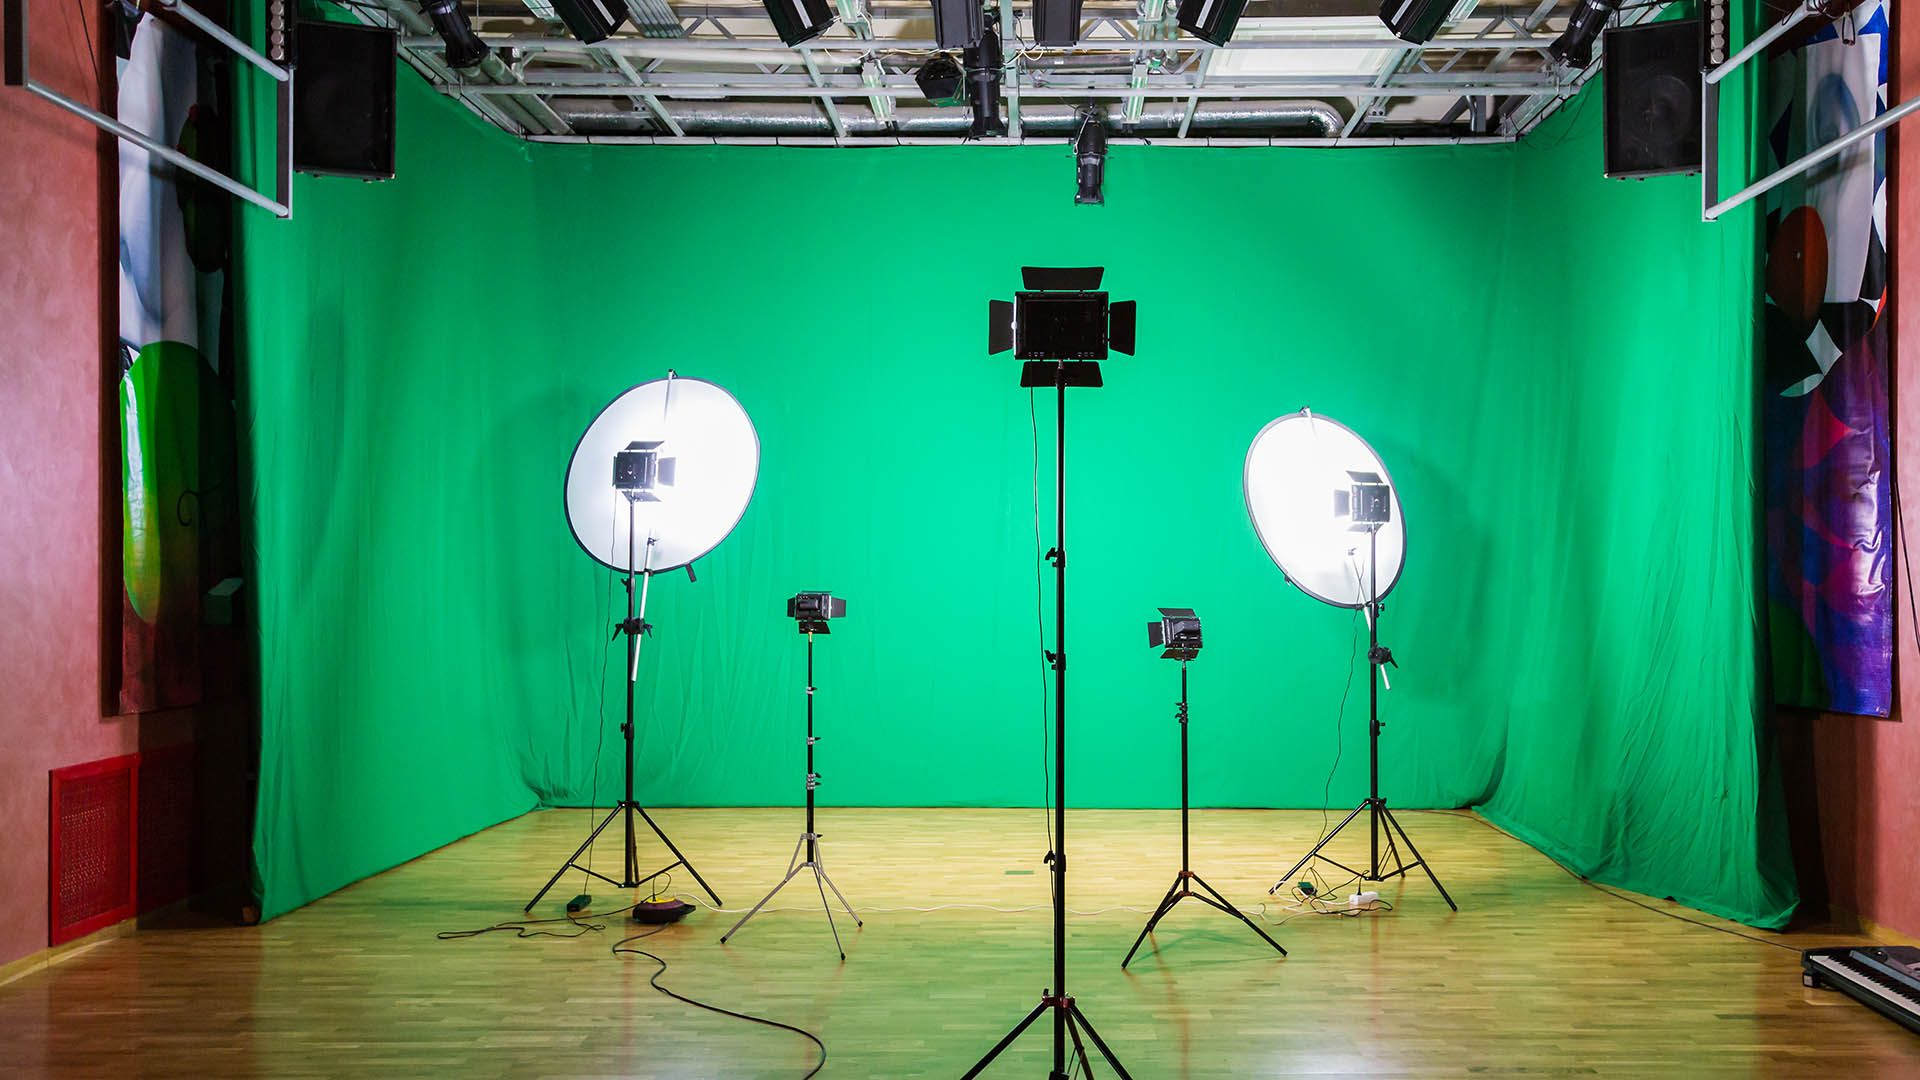 Lights and cameras in a studio